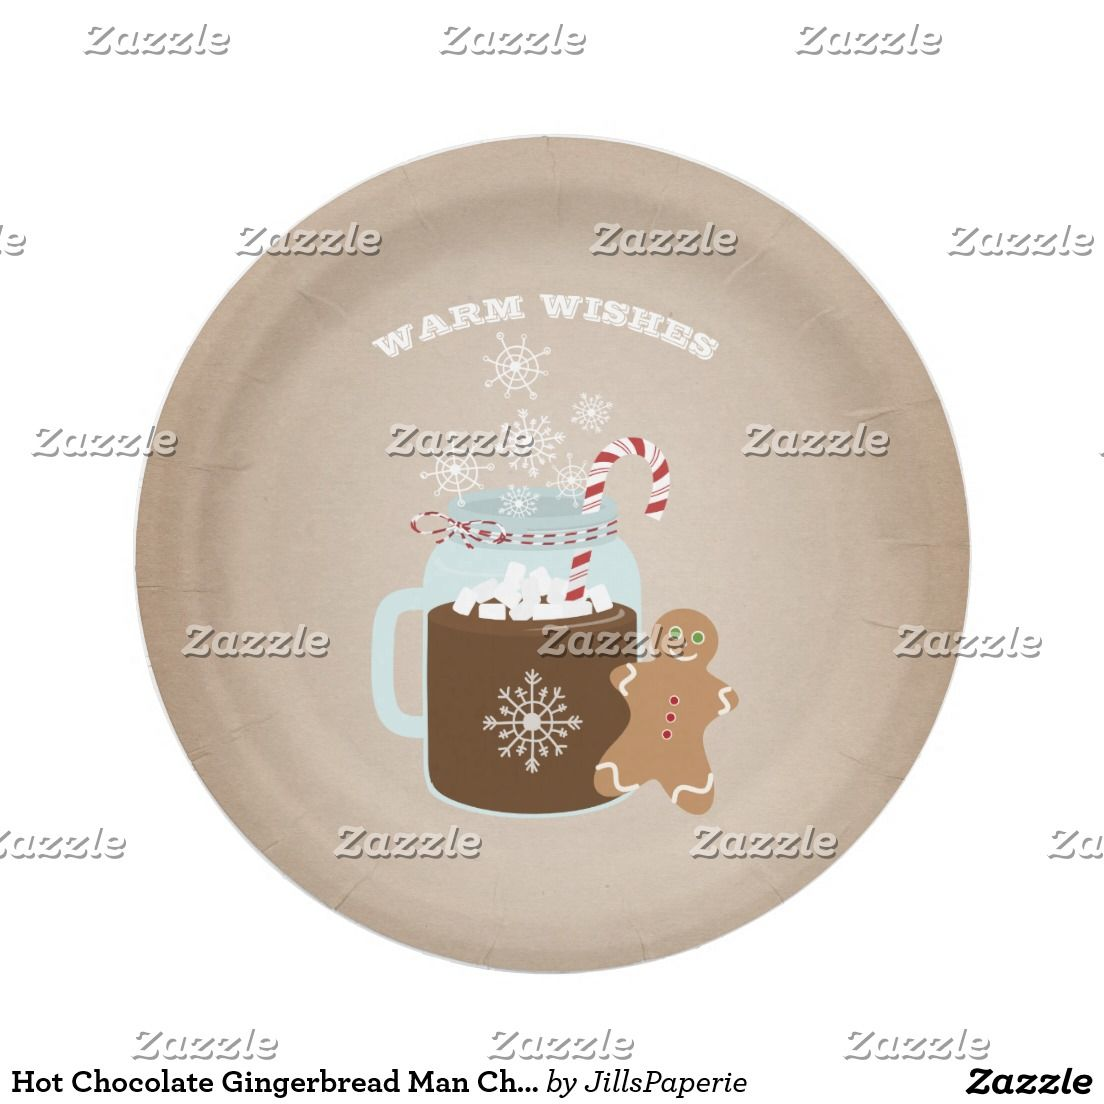 Hot Chocolate Gingerbread Man Christmas Paper Plate  sc 1 st  Pinterest & Hot Chocolate Gingerbread Man Christmas Paper Plate | Christmas ...